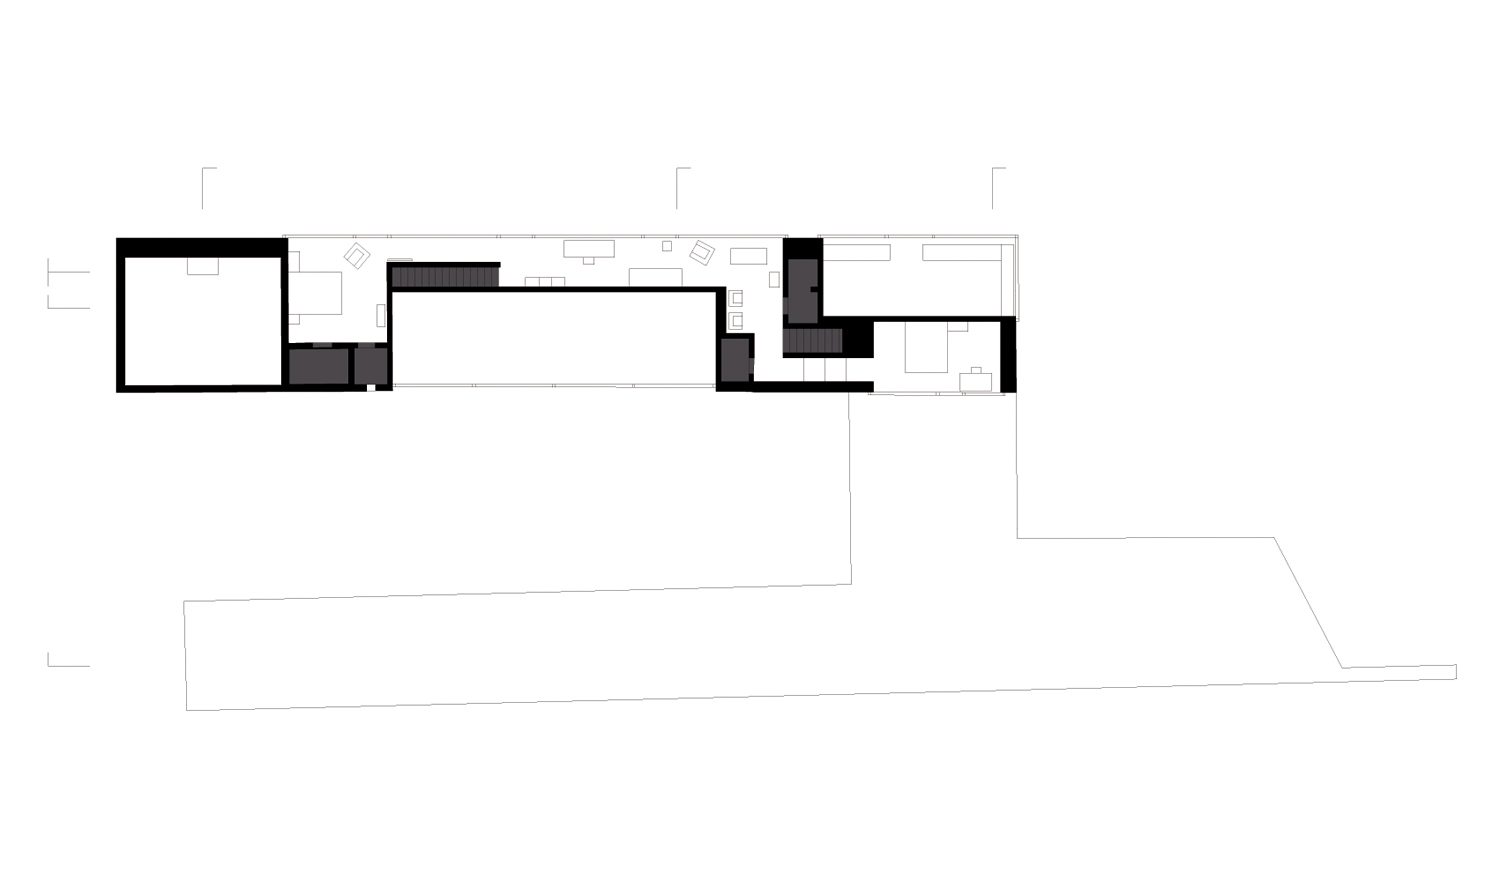 gallery of multiplicity and memory talking about architecture multiplicity and memory talking about architecture with peter zumthor zumthor house plan 02